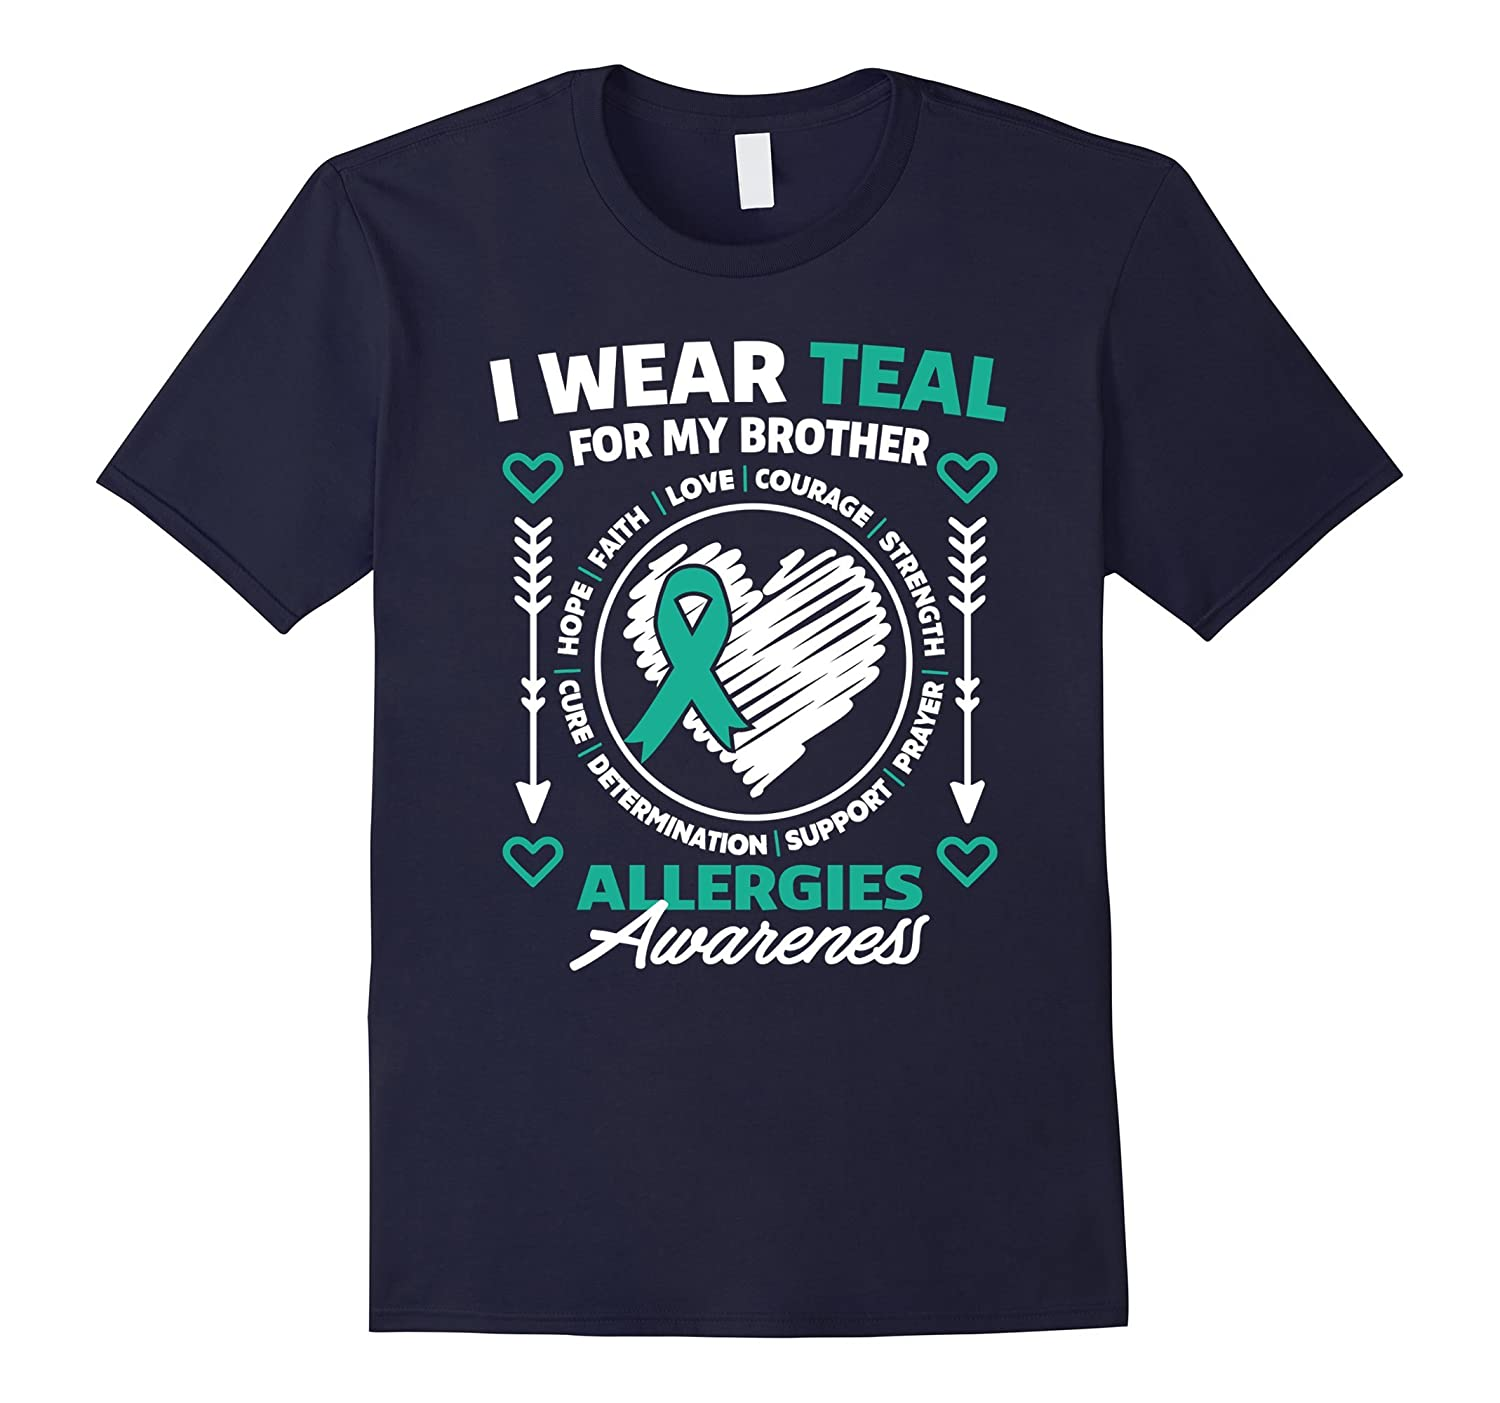 Allergies Awareness T-shirt I Wear Teal For My Brother Shirt-CL